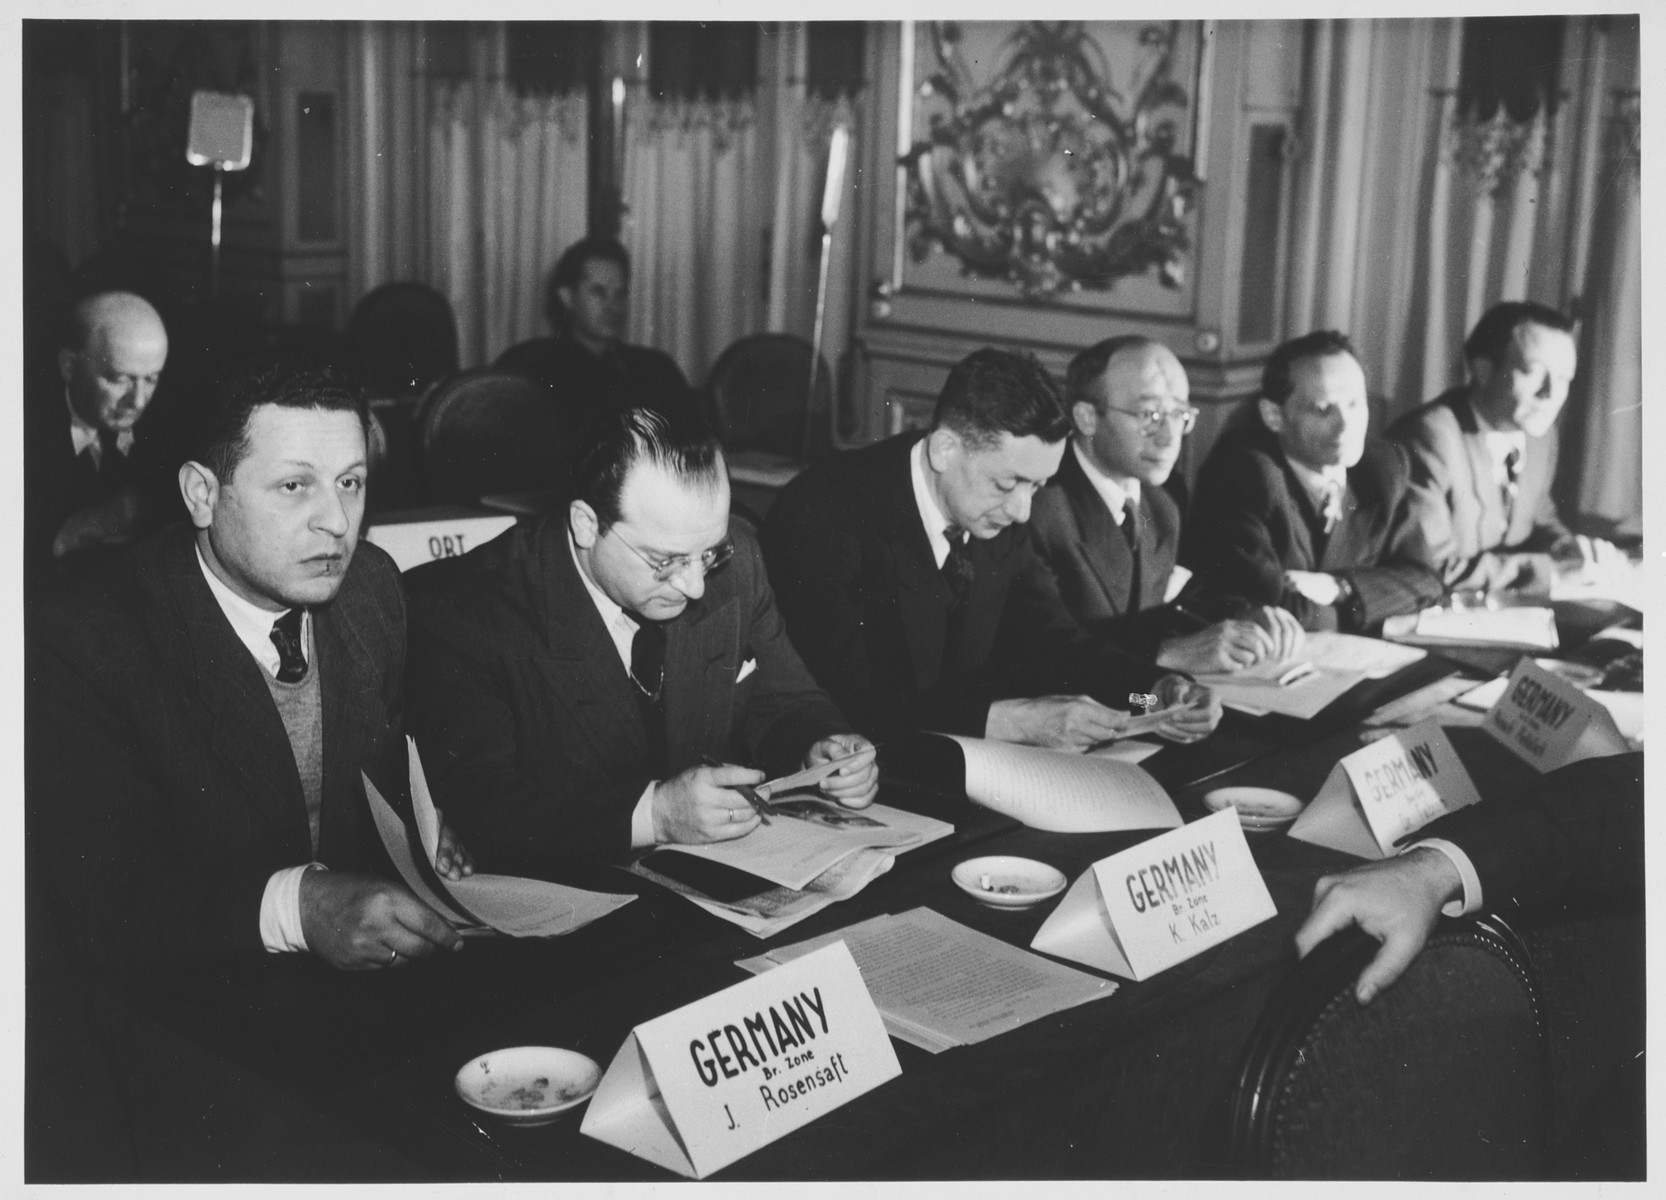 Members of the German delegation attend a conference sponsored by the Joint Distribution Committee on the status of the Jewish populations of Europe and North Africa.  Pictured from left to right are: K. Katz, Norbert Wollheim, Hans Fabian, Peisach Piekatsch and Chaskiel Eife.